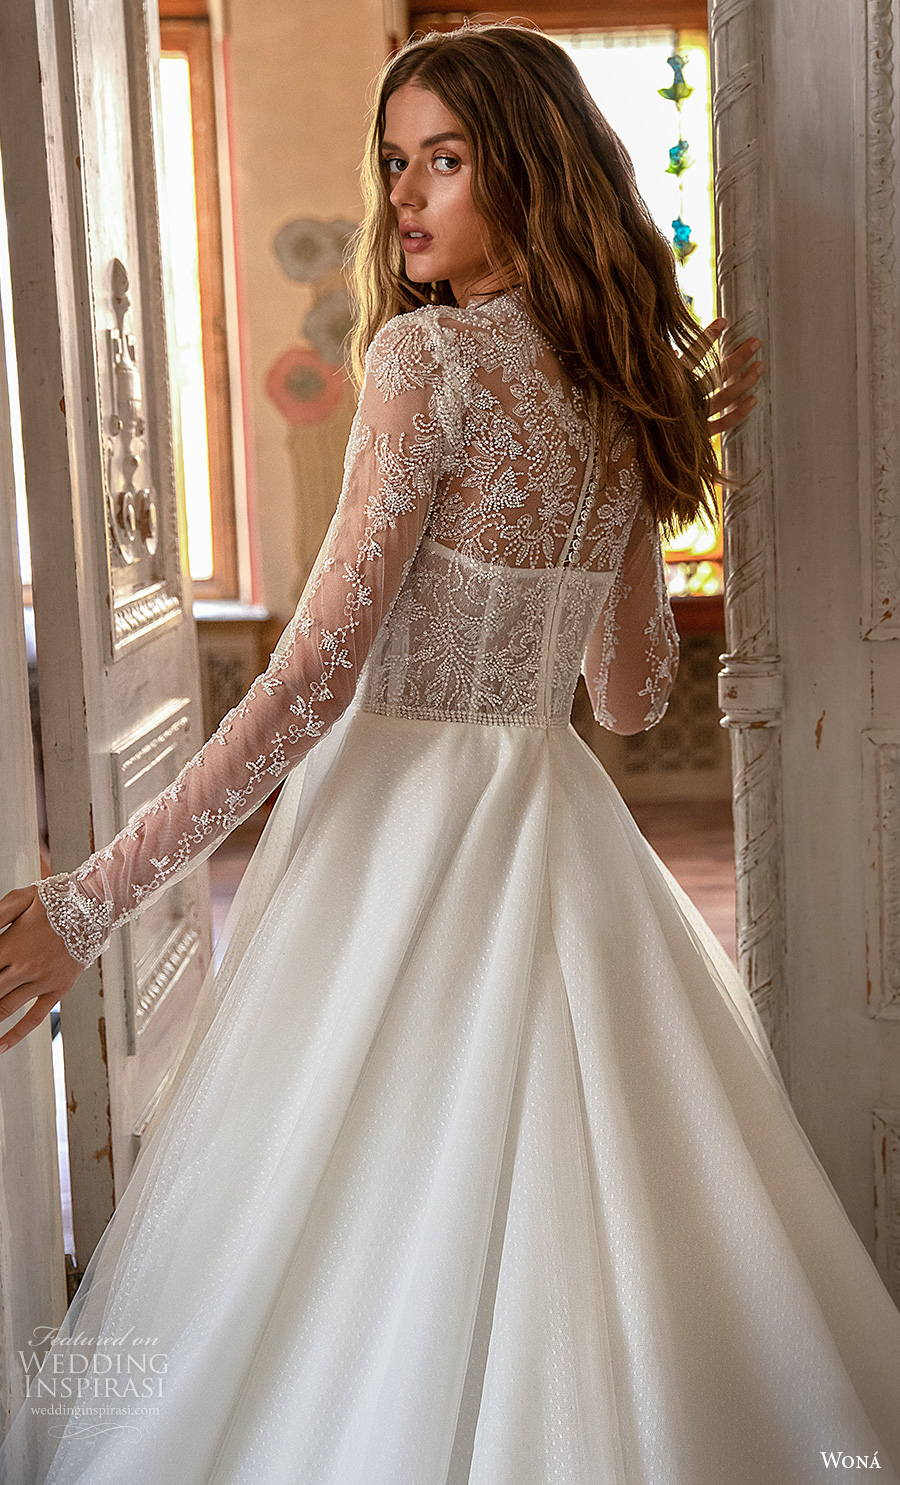 wona concept 2021 romance bridal long sleeves high neck heavily embellished bodice princess a  line wedding dress lace back chapel train (10) zbv